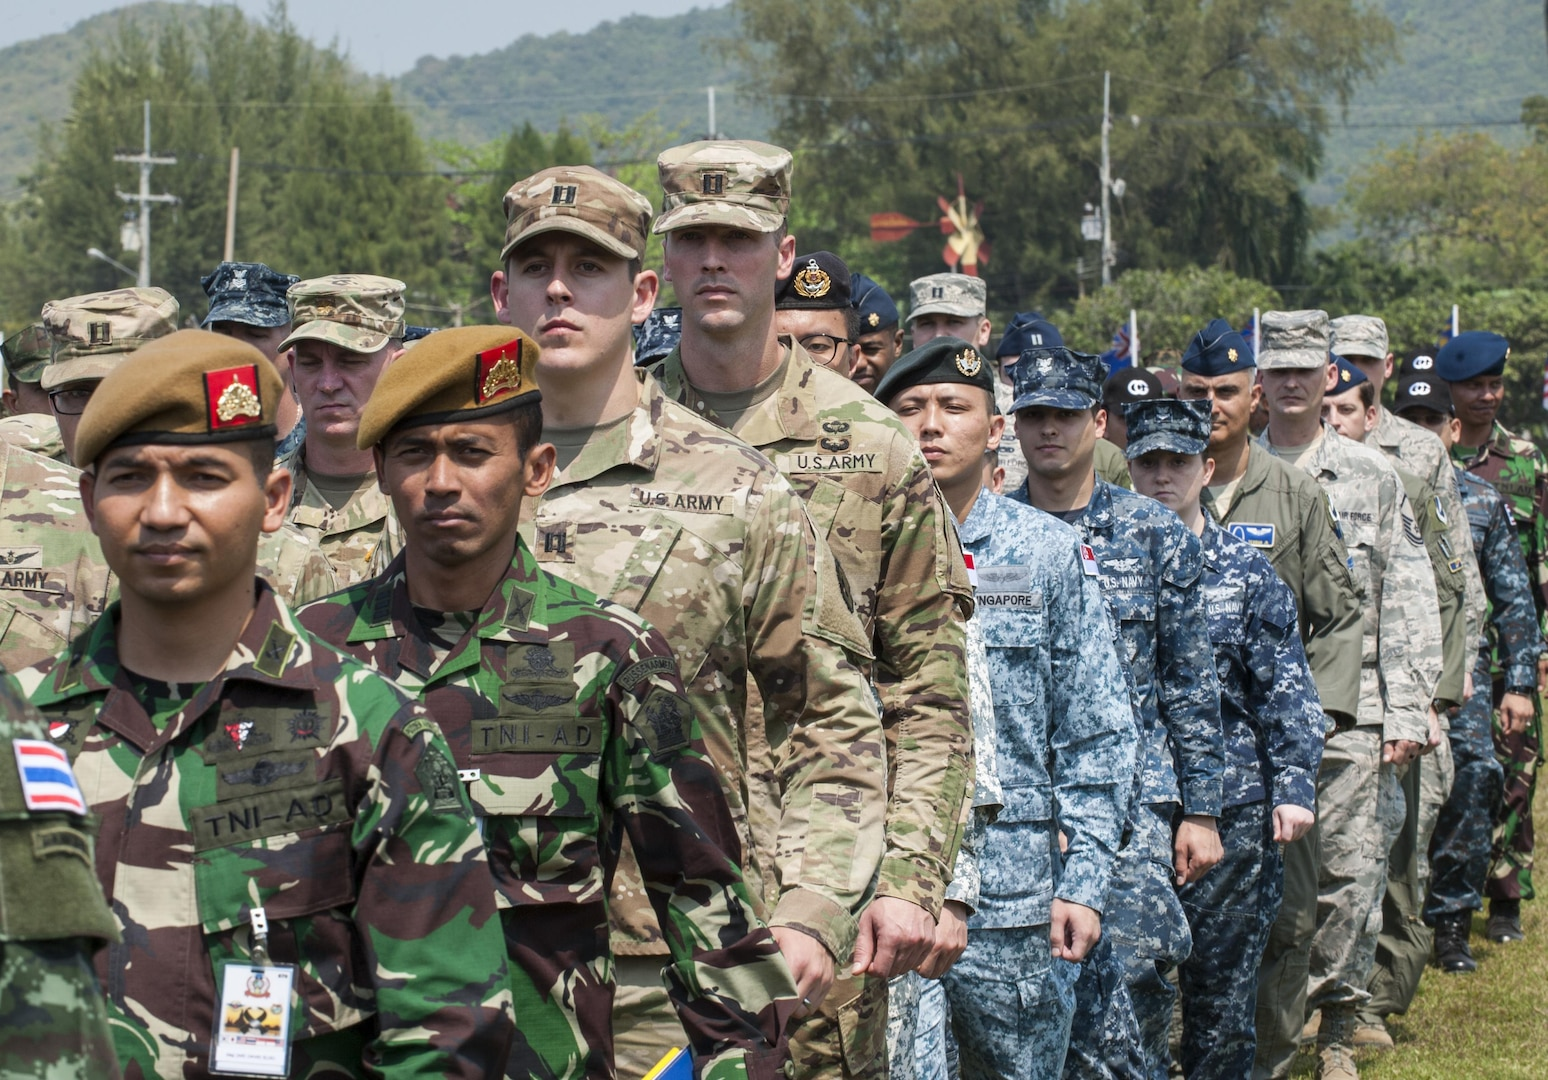 Multi-National Forces march in formation after the conclusion of the official opening ceremony of Cobra Gold 2017. Cobra Gold, in its 36th iteration, is the largest Theater Security Cooperation exercise in the Indo-Asia-Pacific. This year's focus is to advance regional security and ensure effective responses to regional crises by bringing together a robust multinational force to address shared goals and security commitments in the Indo-Asia-Pacific region.